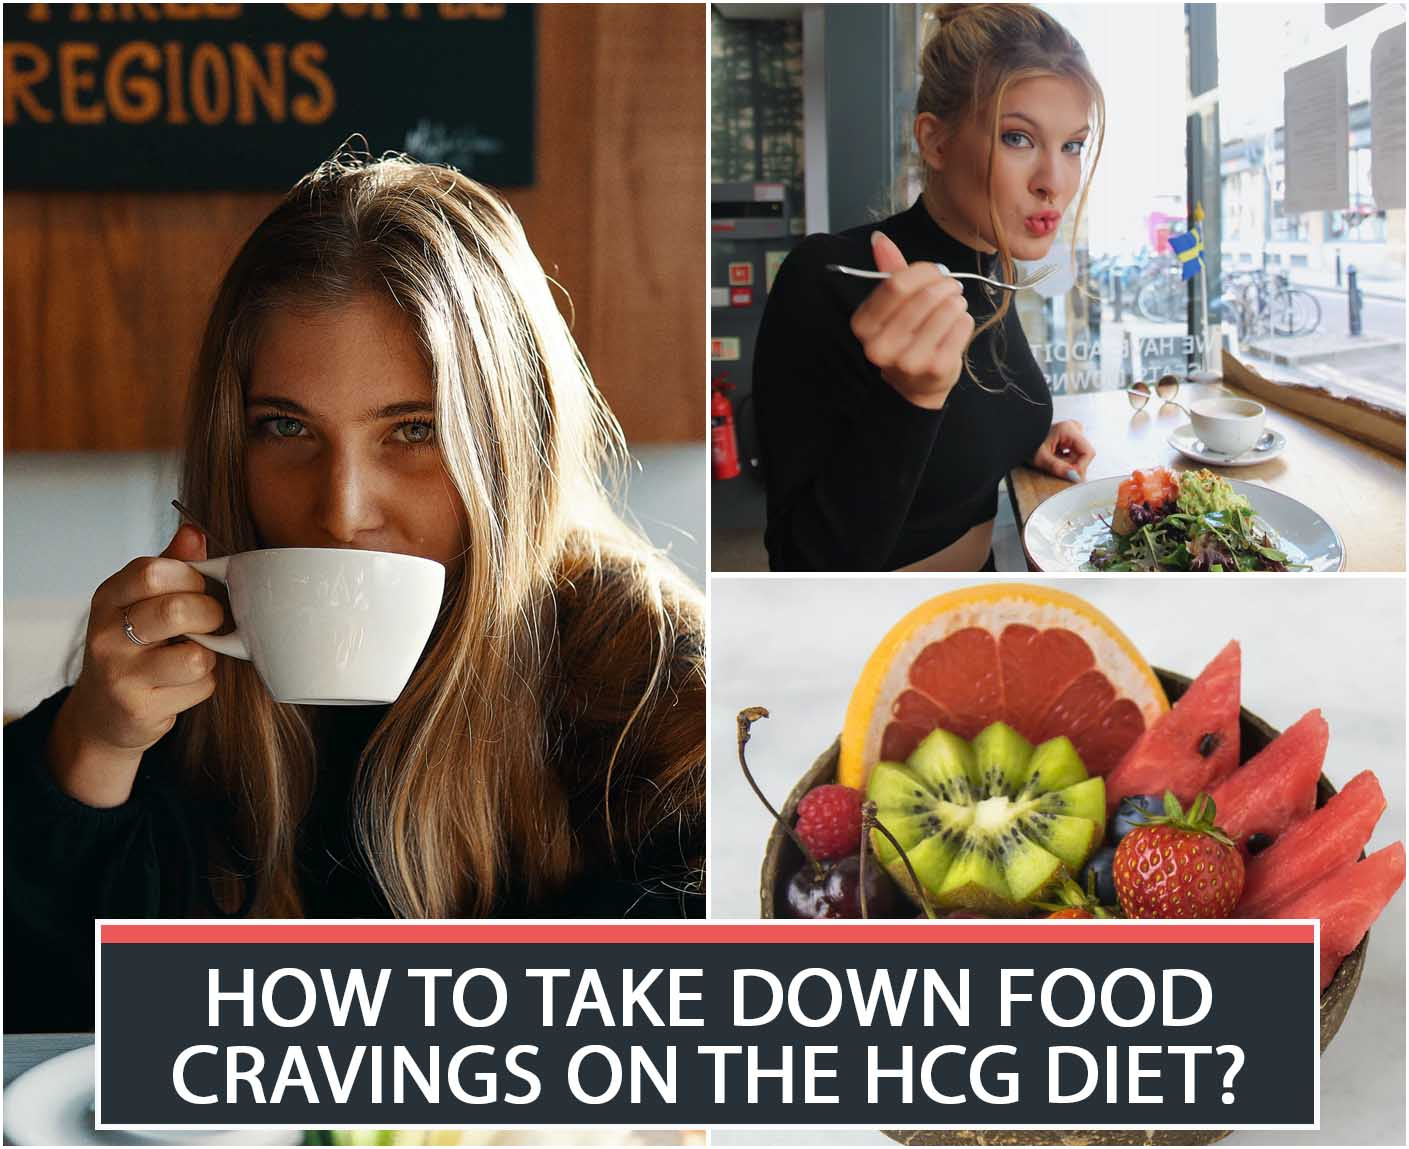 HOW TO TAKE DOWN FOOD CRAVINGS ON THE HCG DIET?